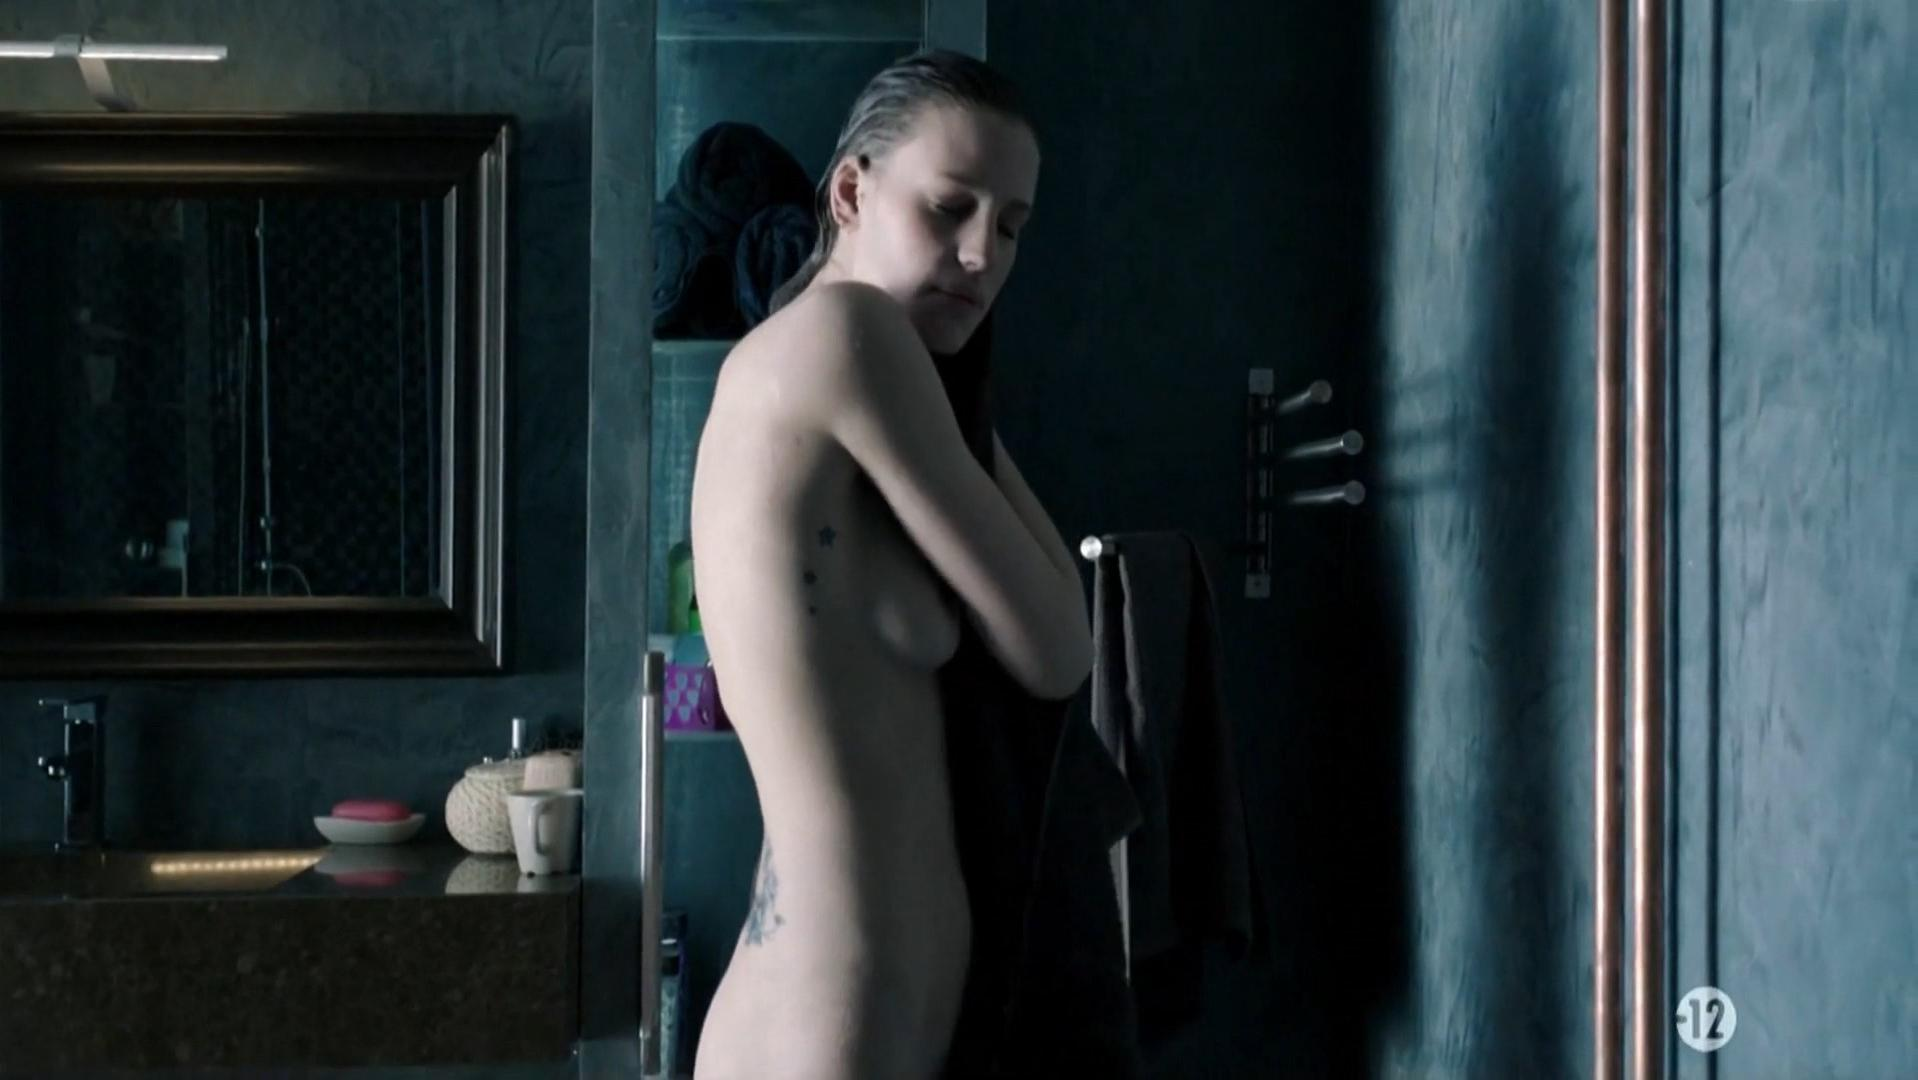 Juliette Dol nude, Evelinn Kostova nude - Section Zero s01e01 (2016)